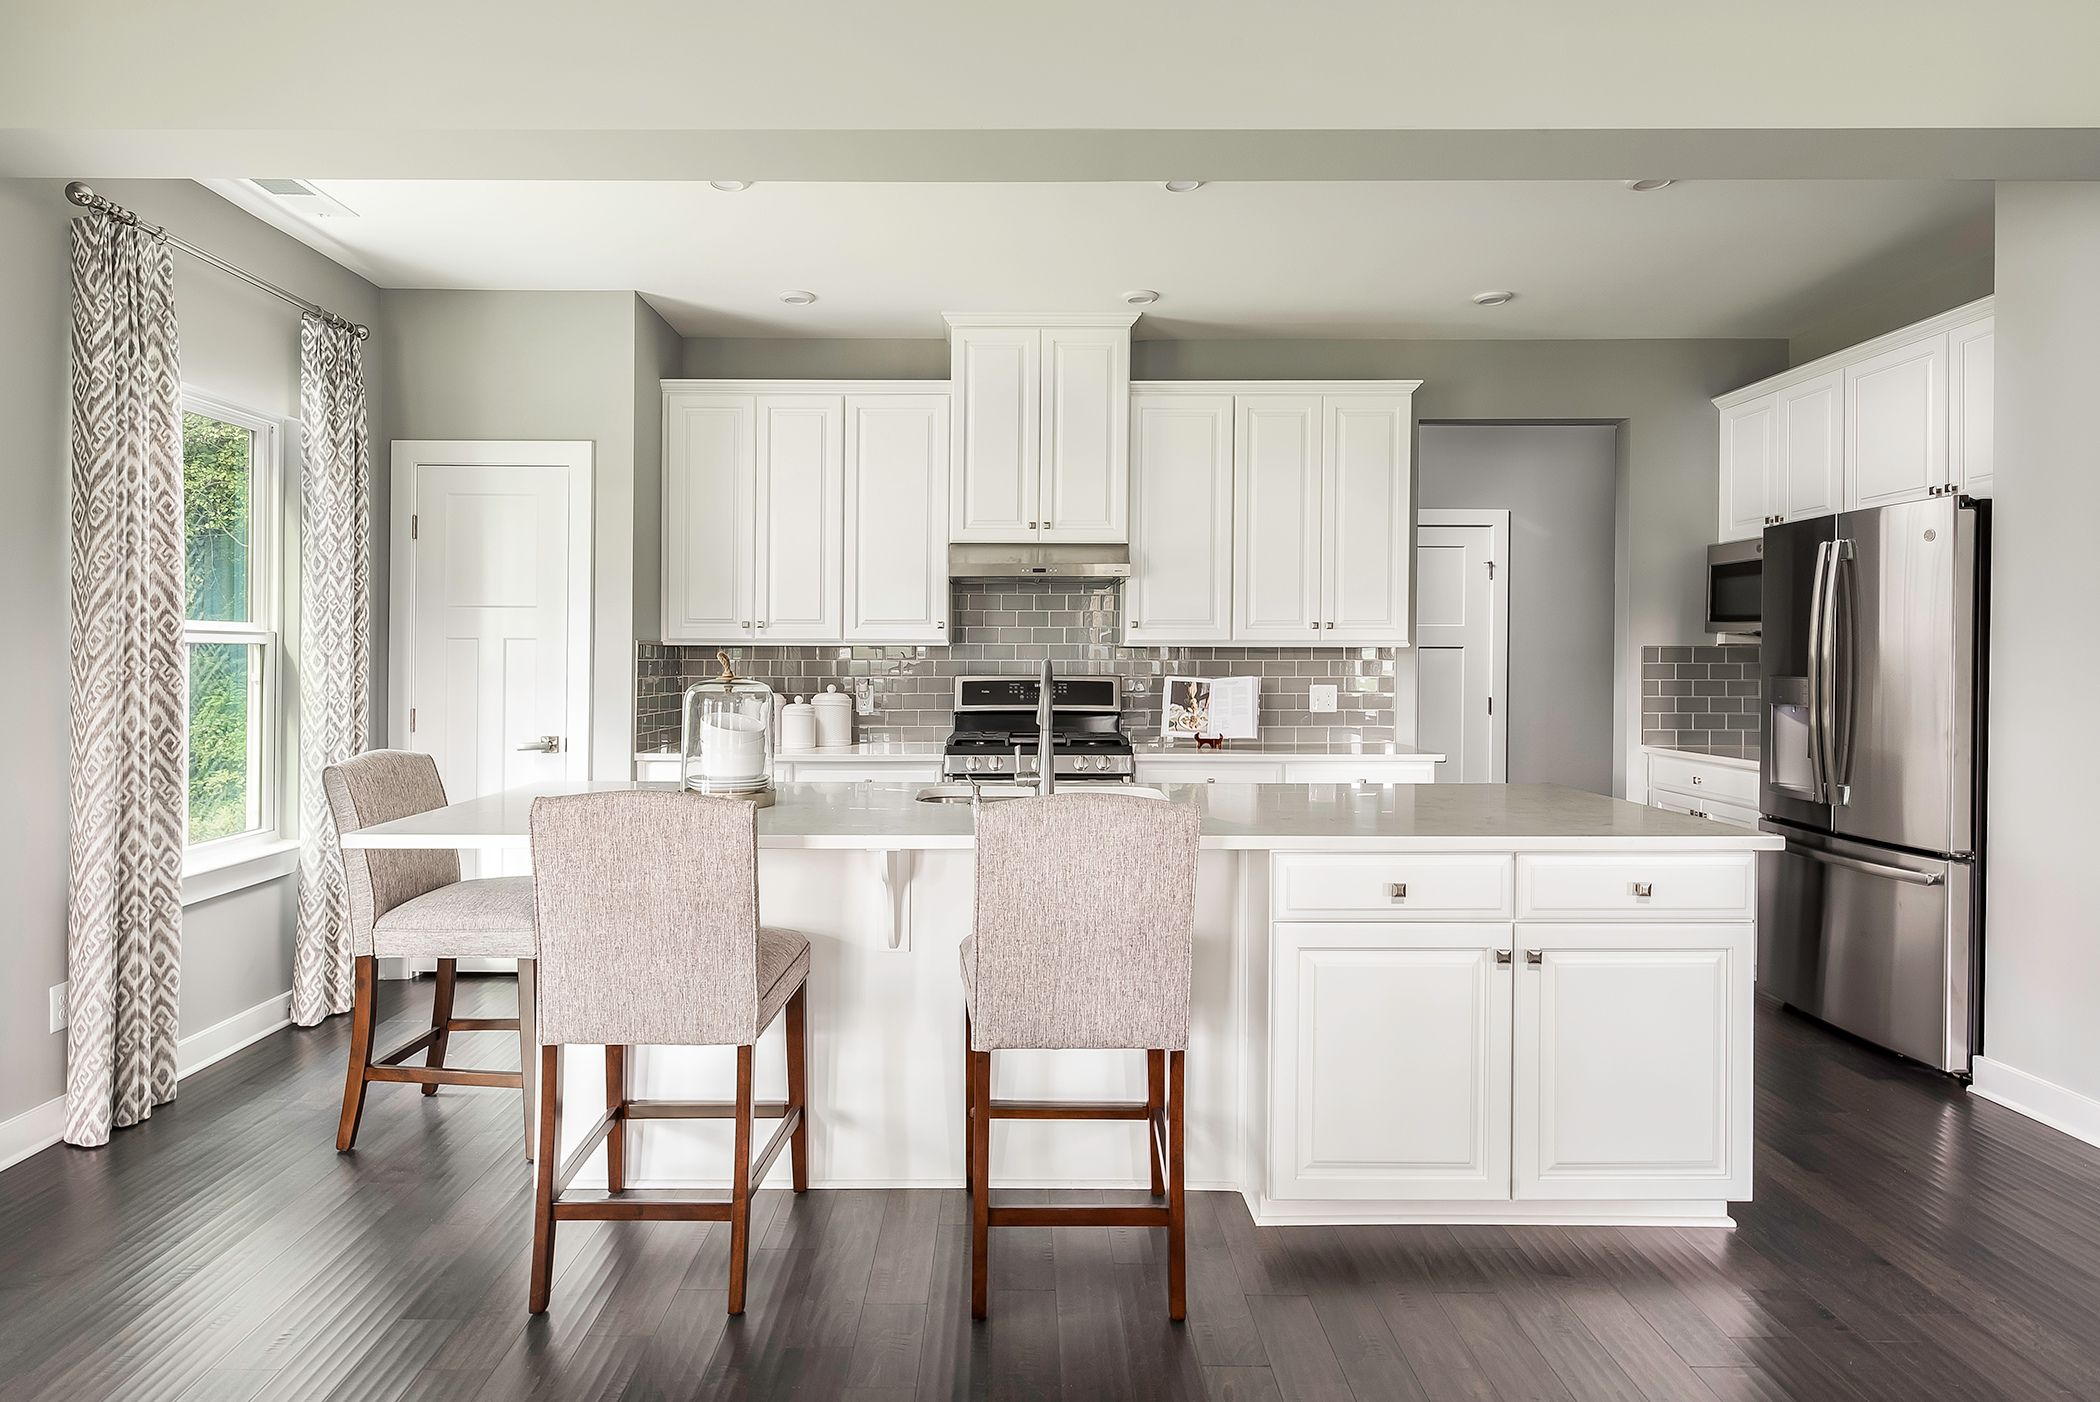 Kitchen featured in the Hudson By HeartlandHomes in Morgantown, WV